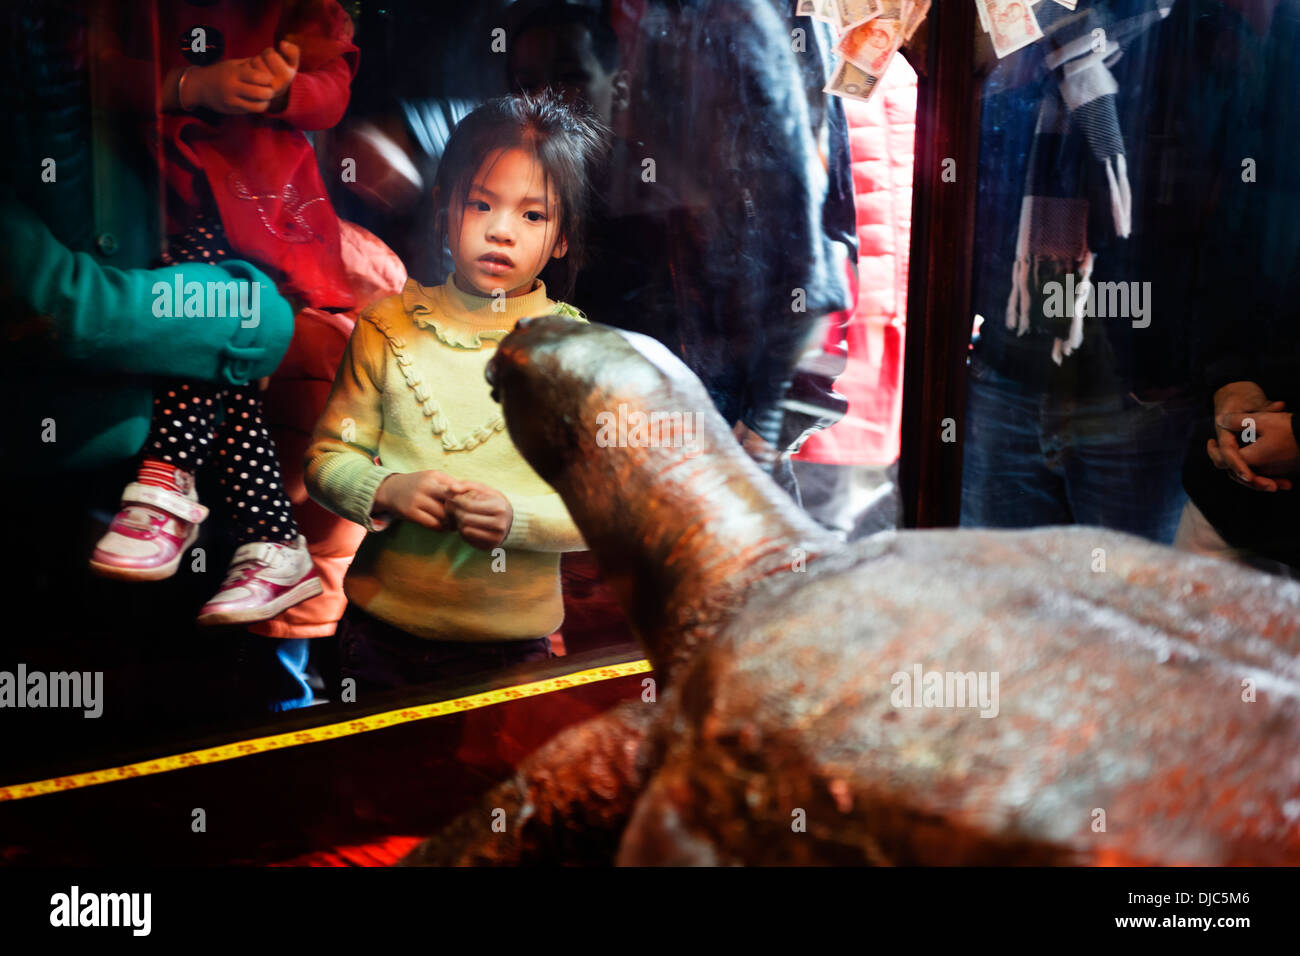 People admiring a sculpture of a giant turtle at the Ngoc Son Temple on Hoan Kiem Lake, Hanoi, Vietnam. - Stock Image